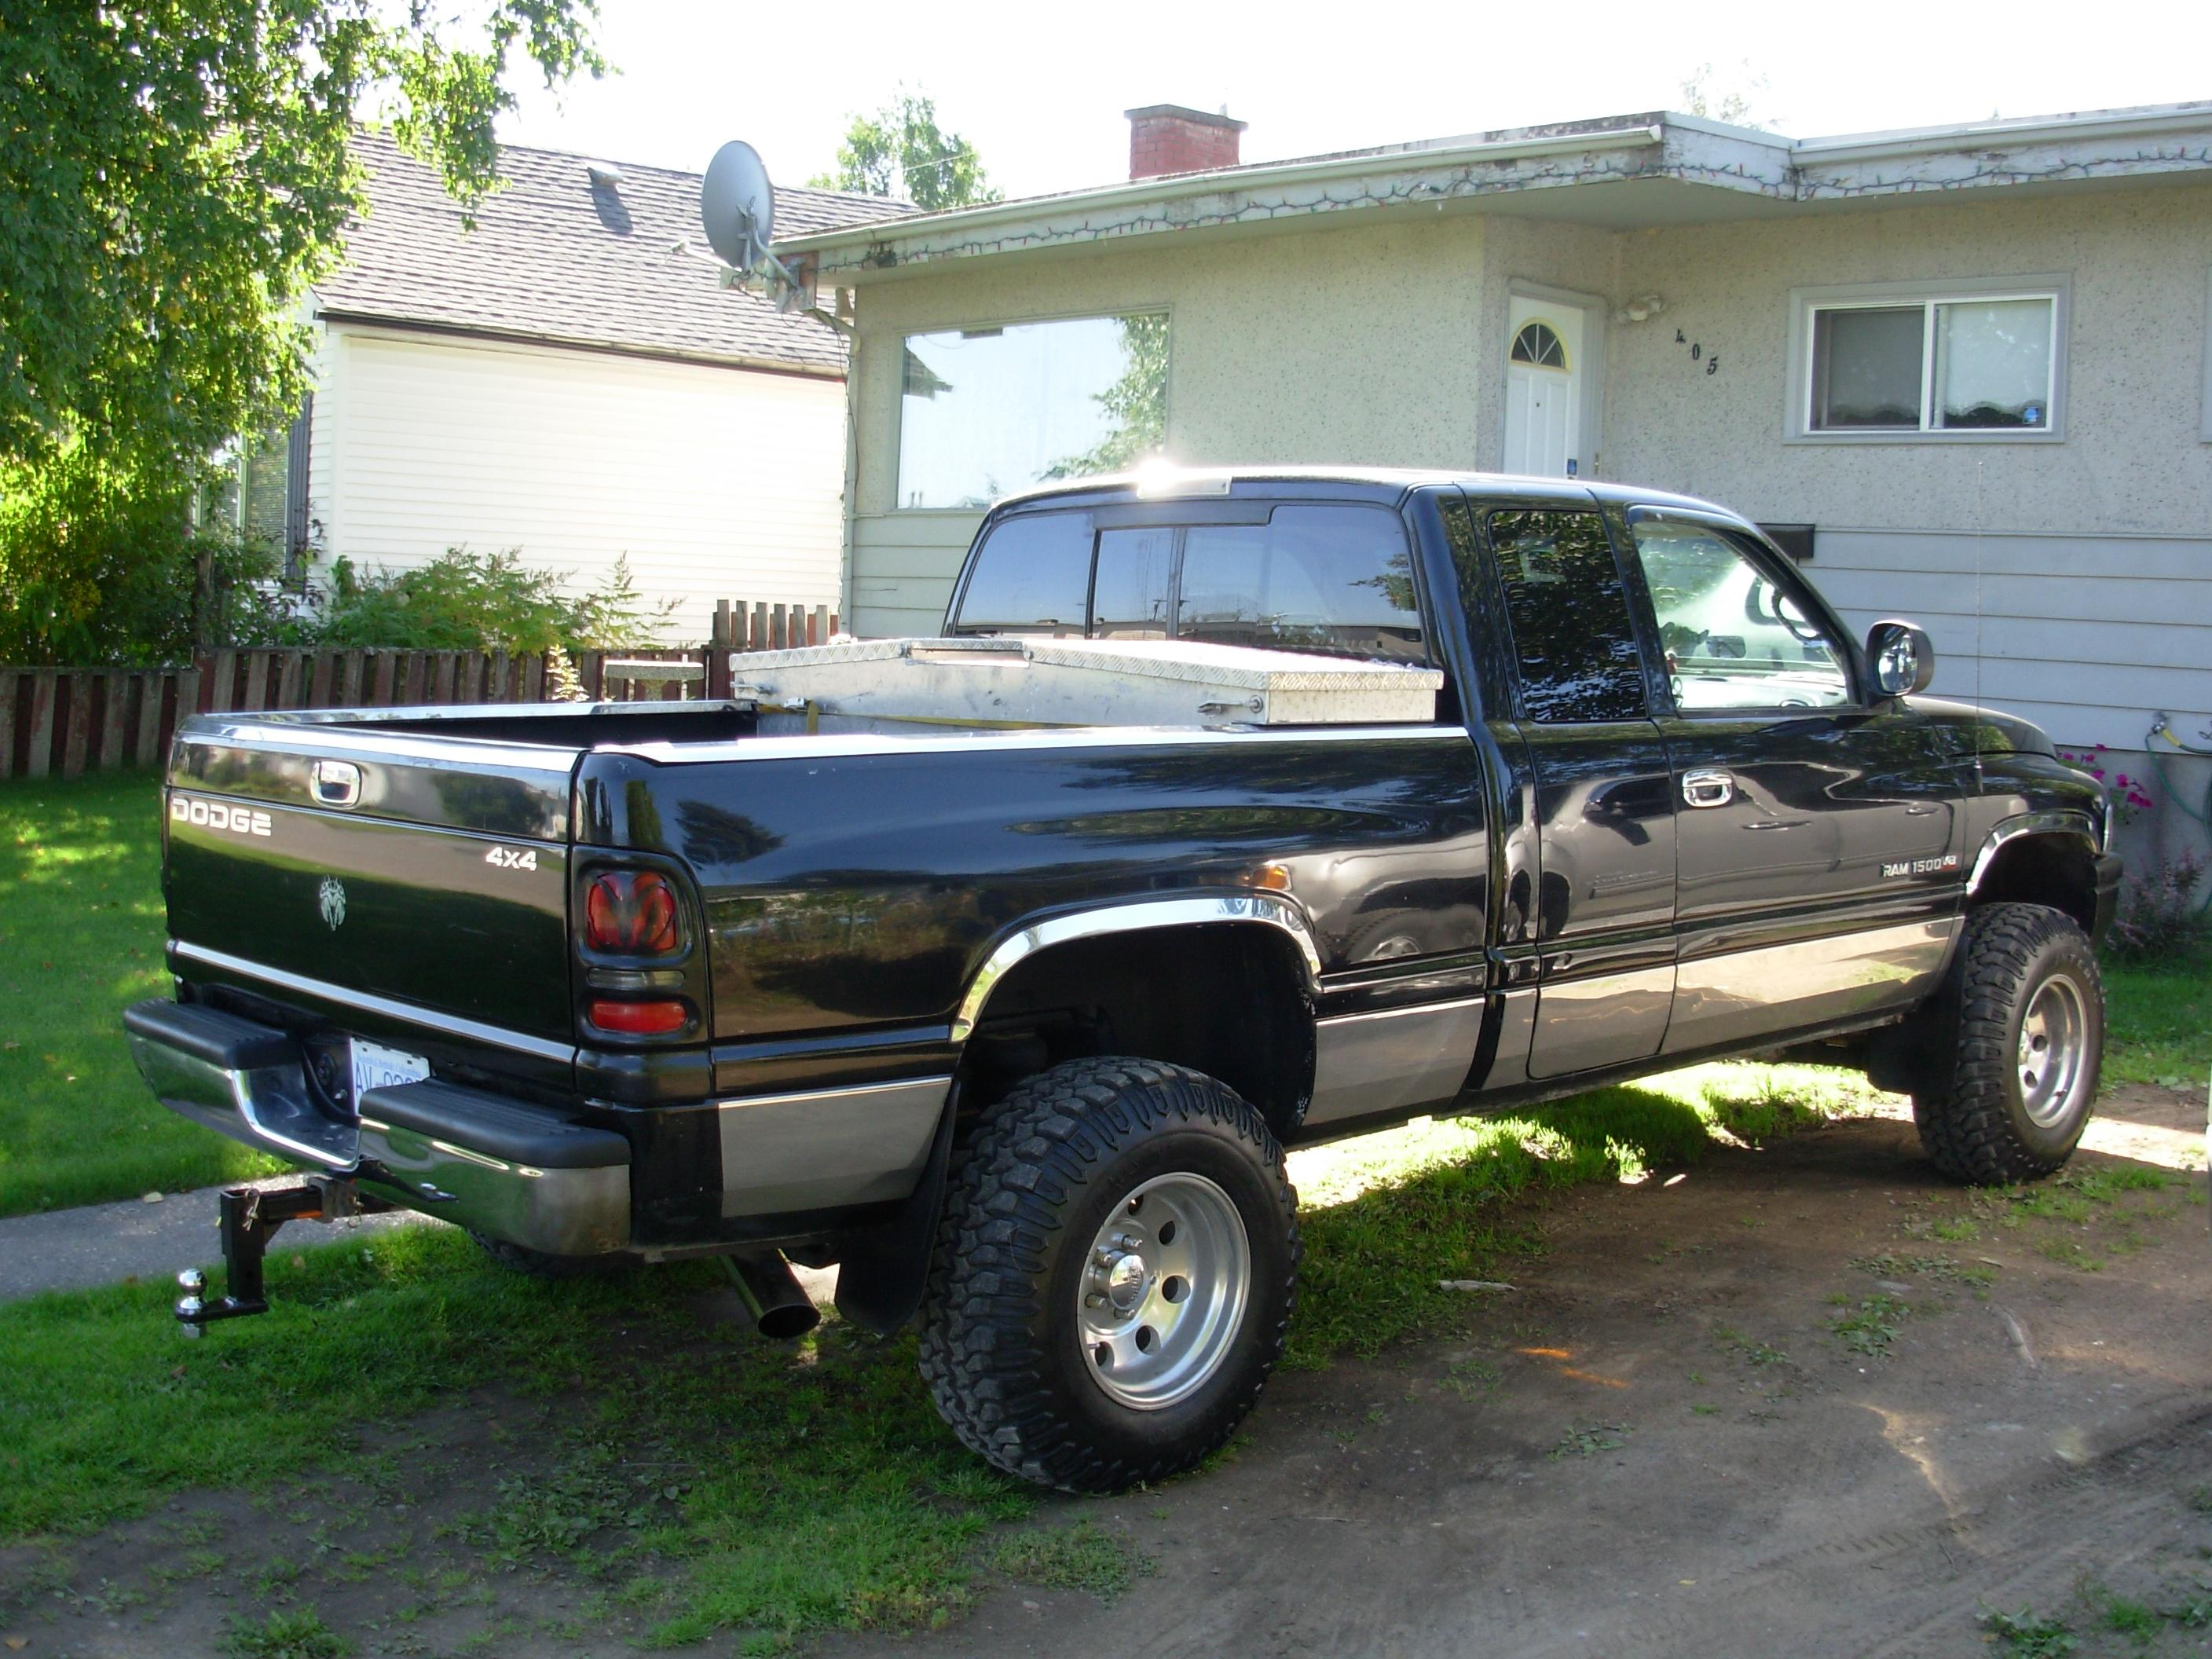 95chevycav 1999 dodge ram 1500 quad cabshort bed specs photos modification info at cardomain. Black Bedroom Furniture Sets. Home Design Ideas